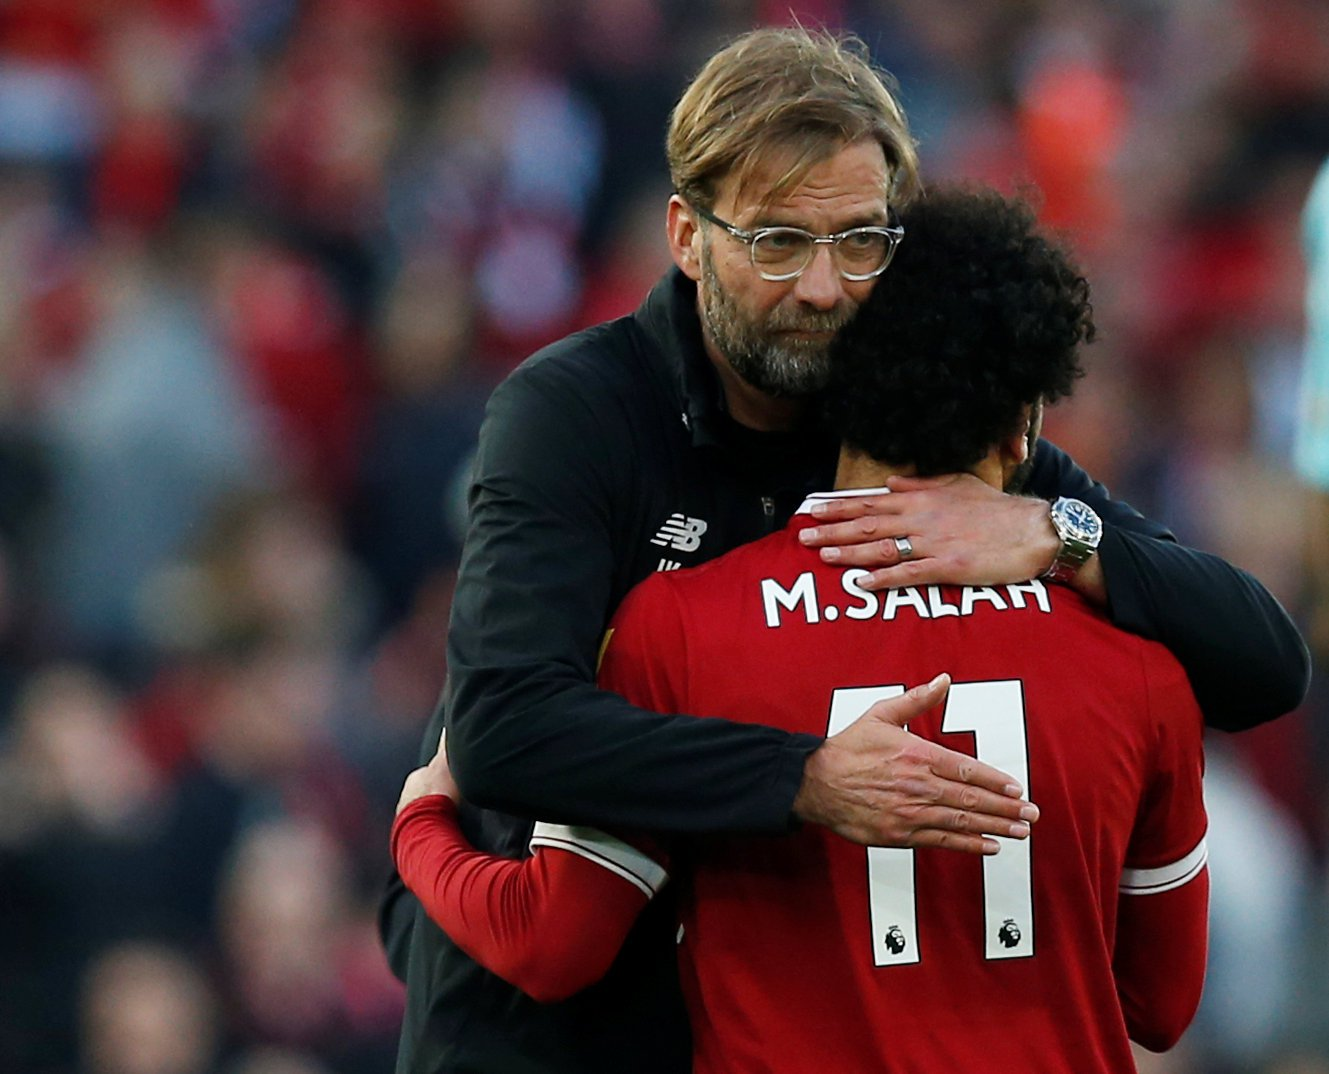 """Soccer Football - Premier League - Liverpool vs AFC Bournemouth - Anfield, Liverpool, Britain - April 14, 2018 Liverpool manager Juergen Klopp and Mohamed Salah celebrate after the match REUTERS/Andrew Yates EDITORIAL USE ONLY. No use with unauthorized audio, video, data, fixture lists, club/league logos or """"live"""" services. Online in-match use limited to 75 images, no video emulation. No use in betting, games or single club/league/player publications. Please contact your account representative for further details."""